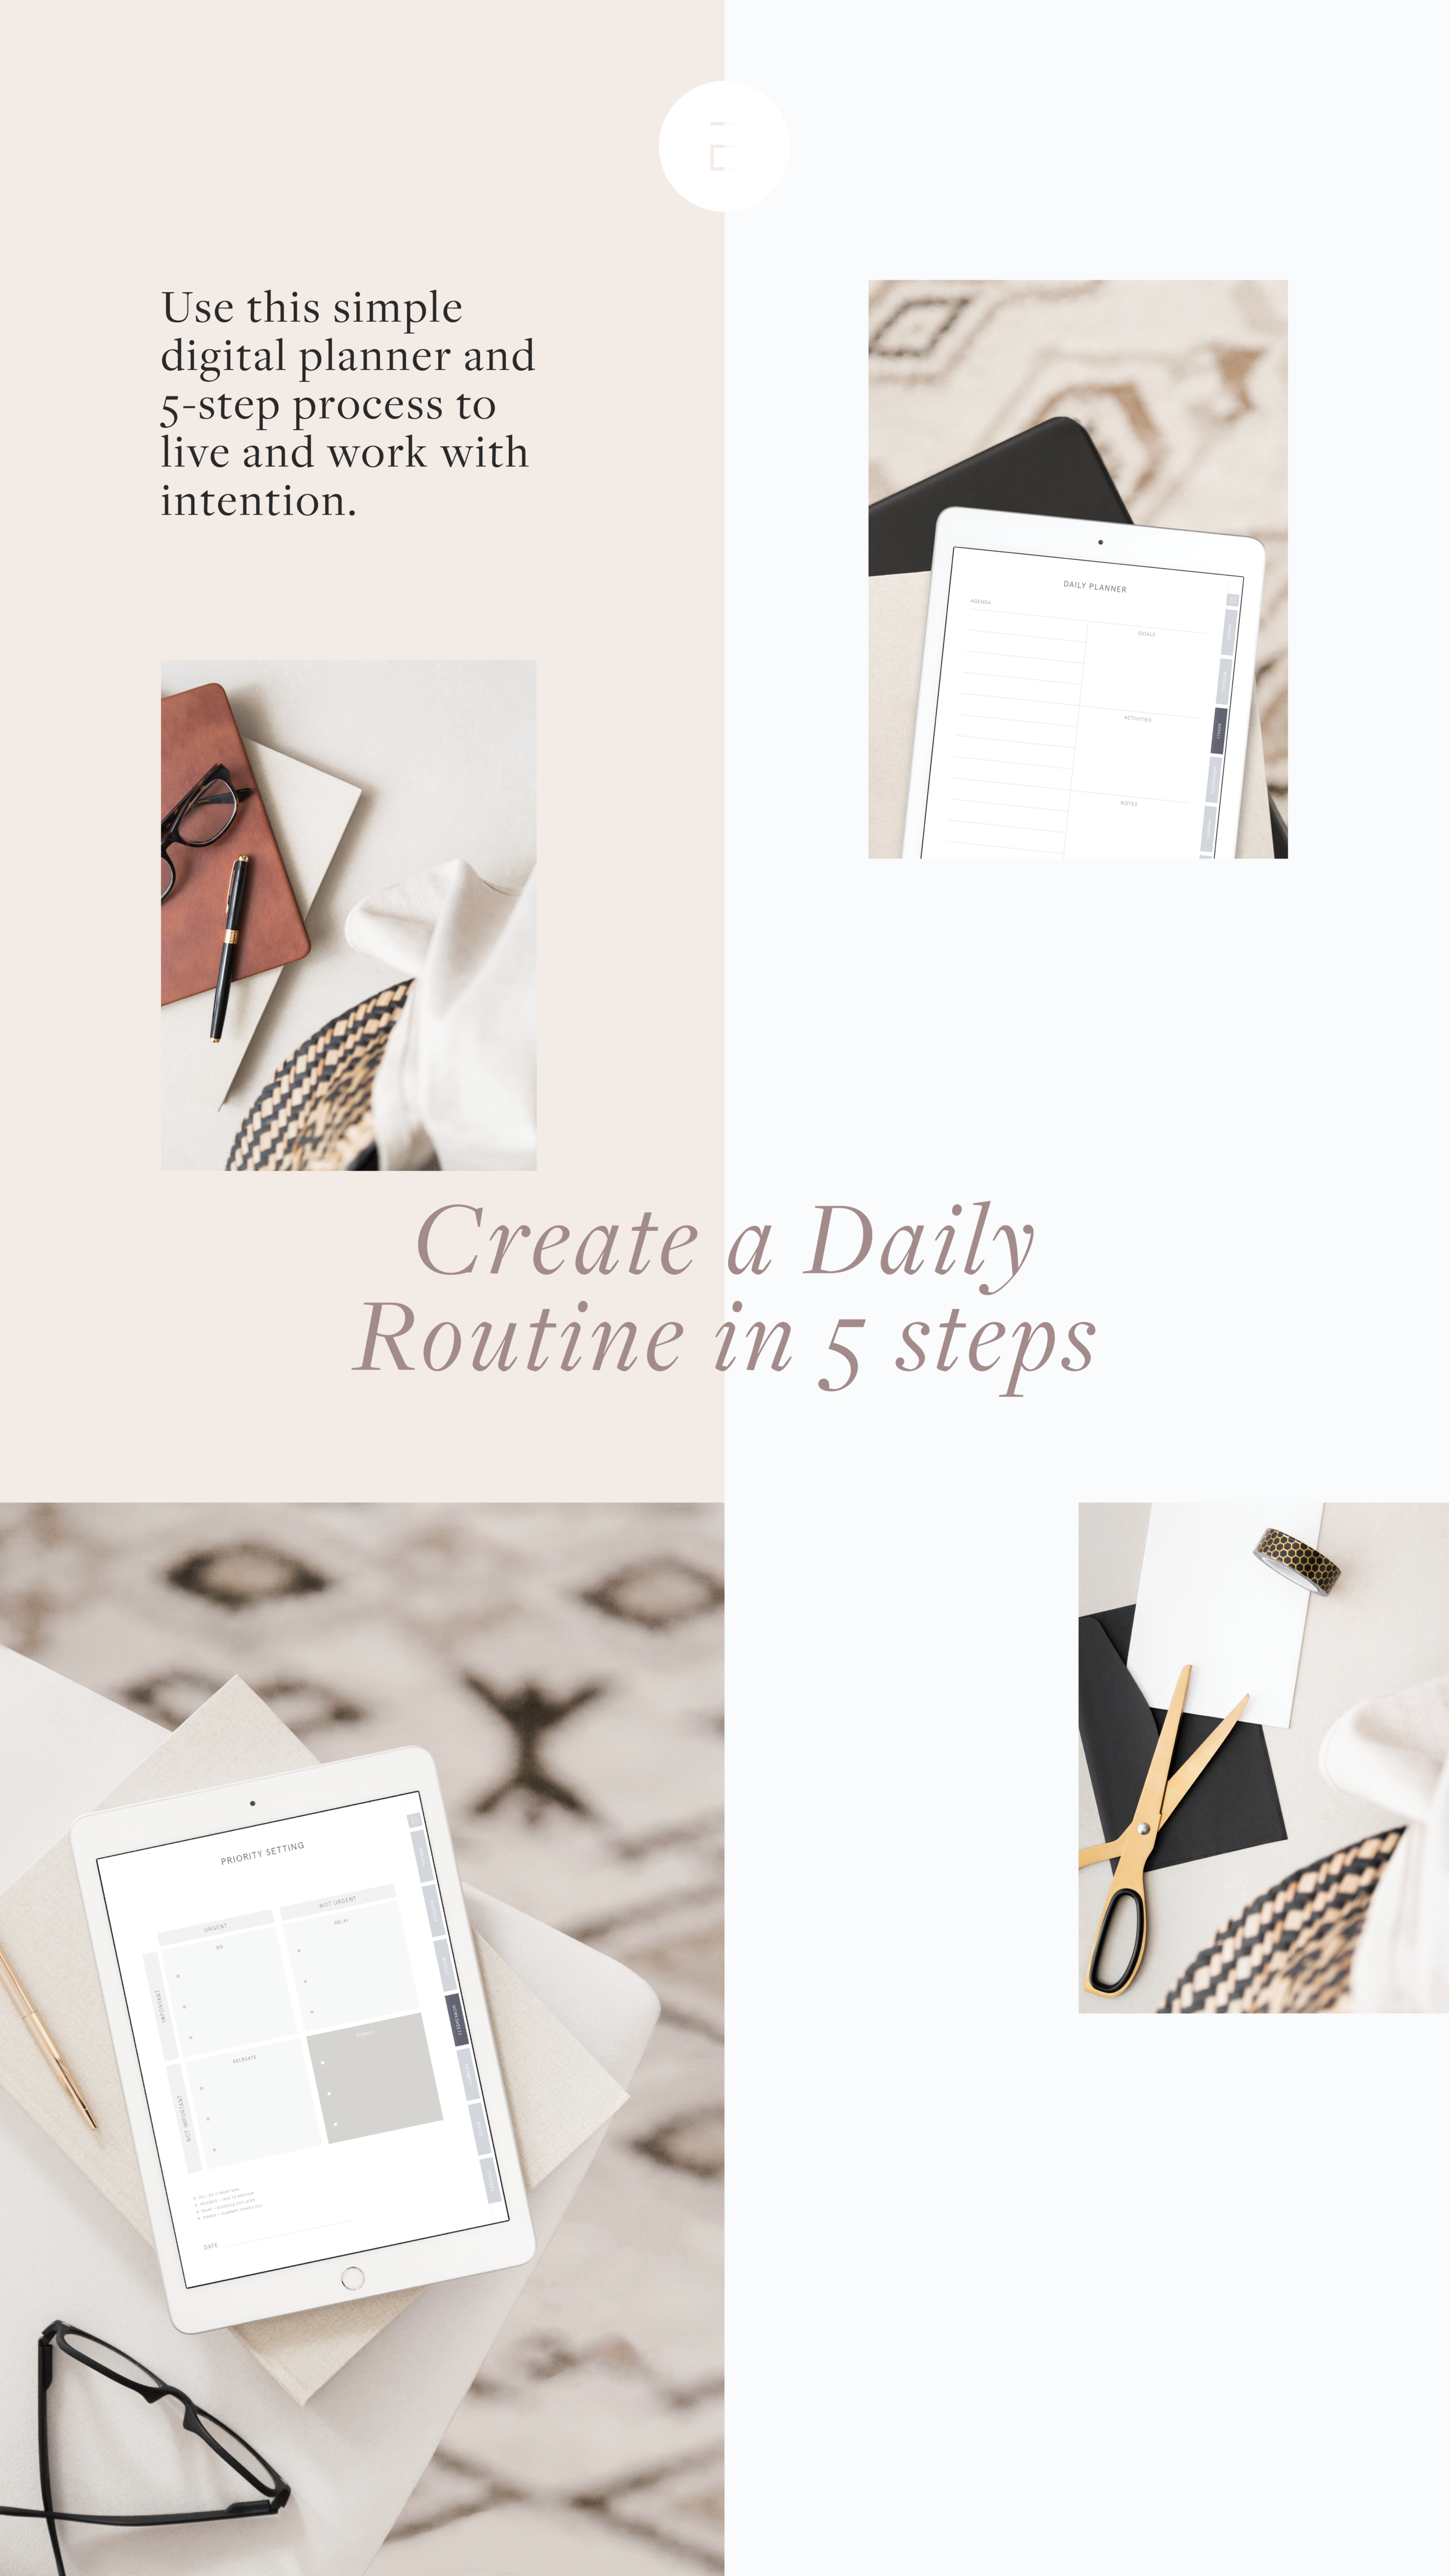 Create your daily routine with this online planner in just 5 steps